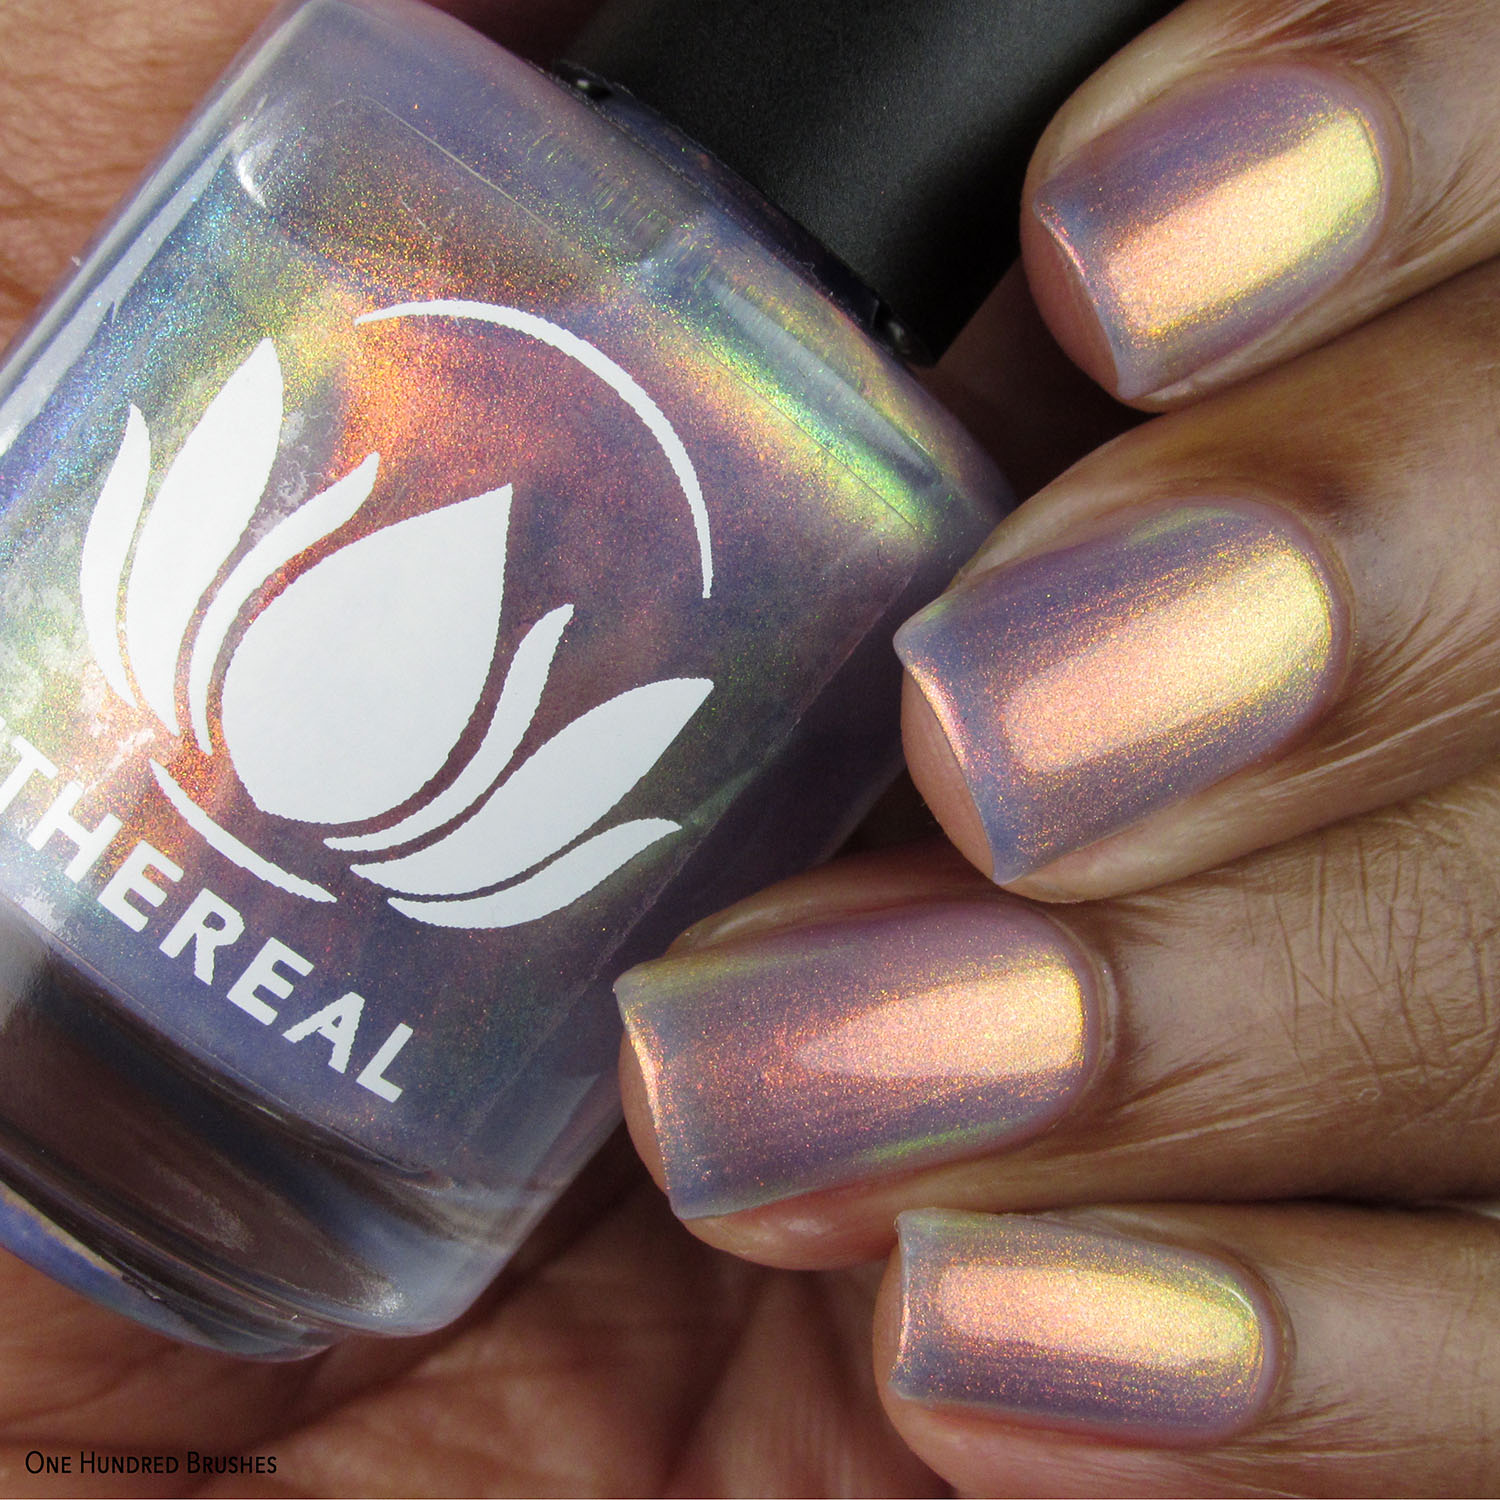 Artemis - Ethereal Lacquer - Hella Handmade Creations May 2020